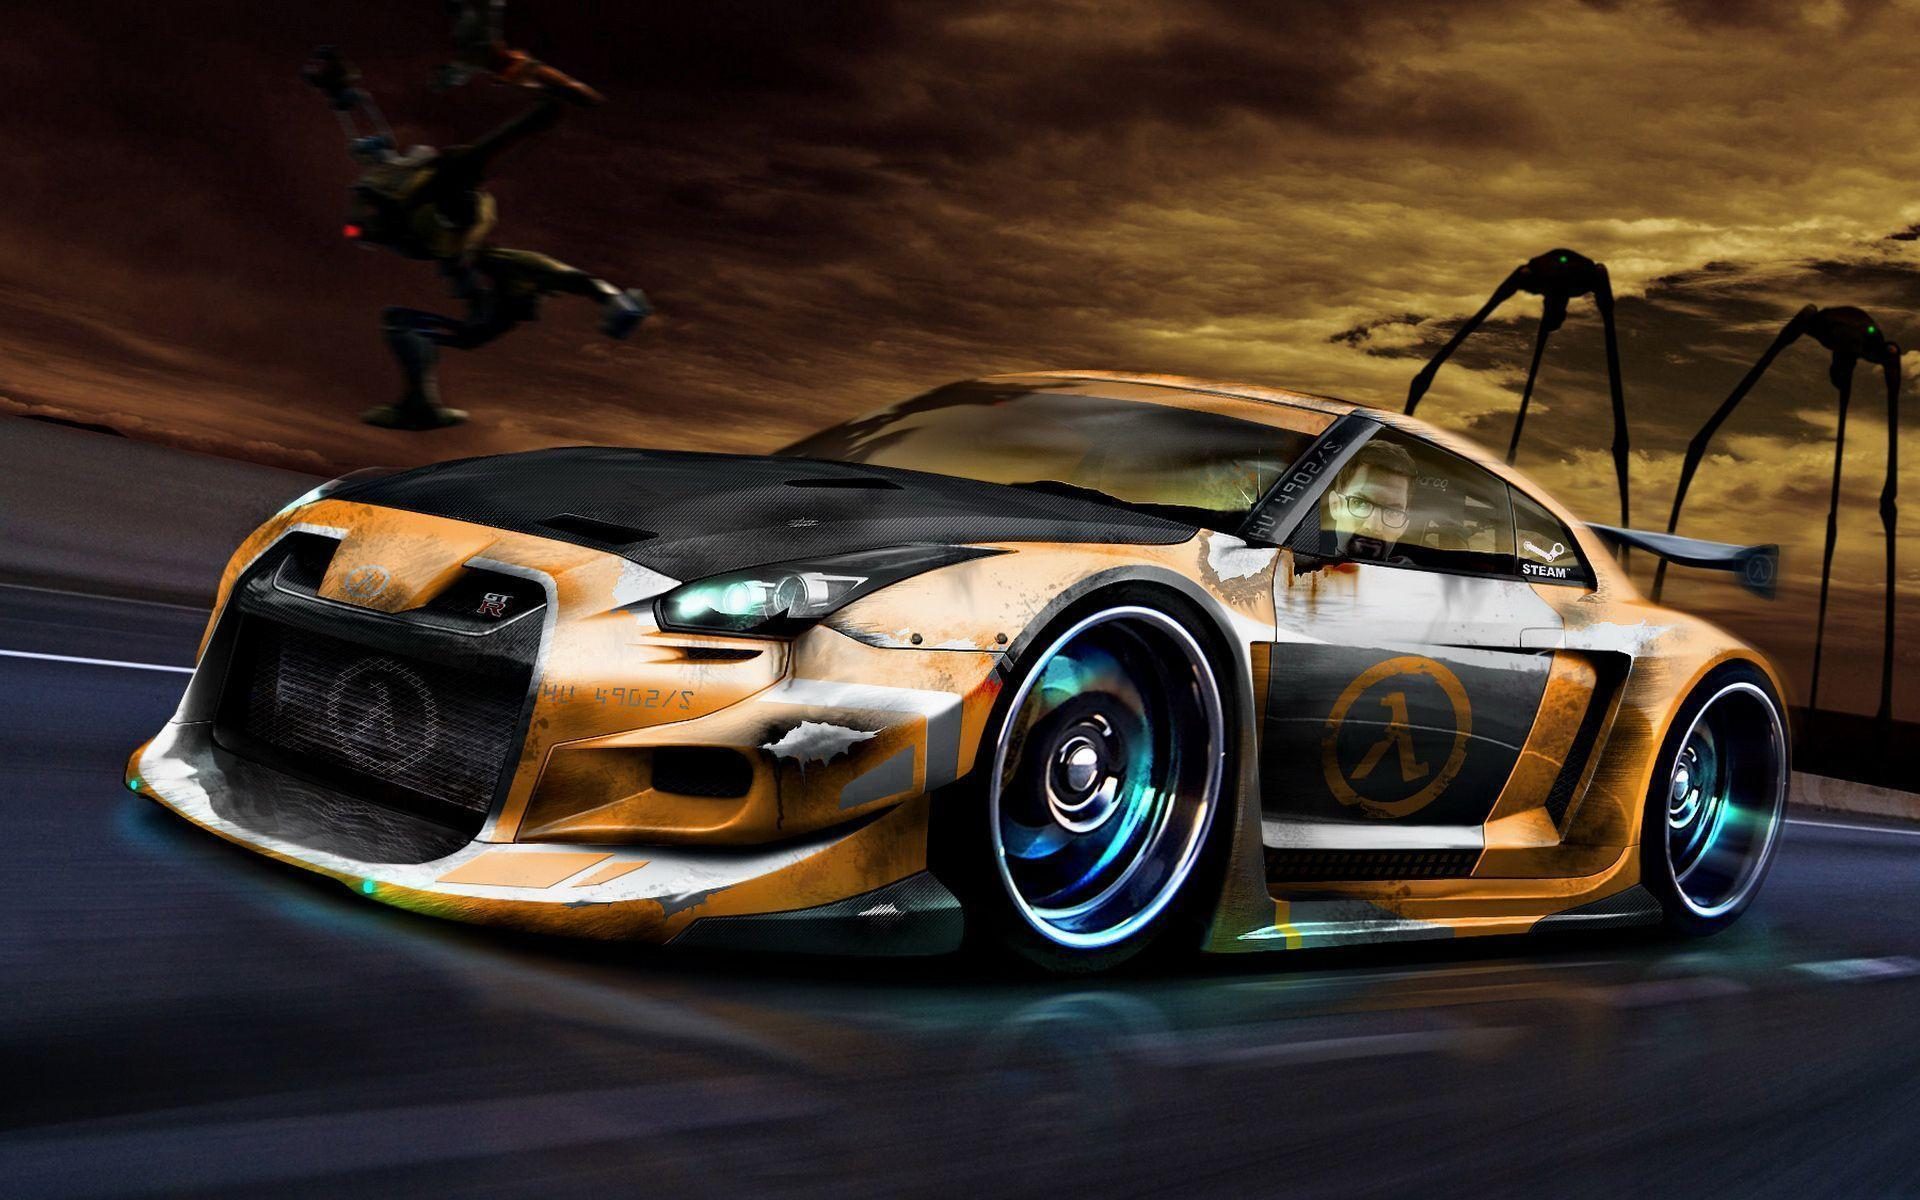 cool sport cars background | vergapipe.